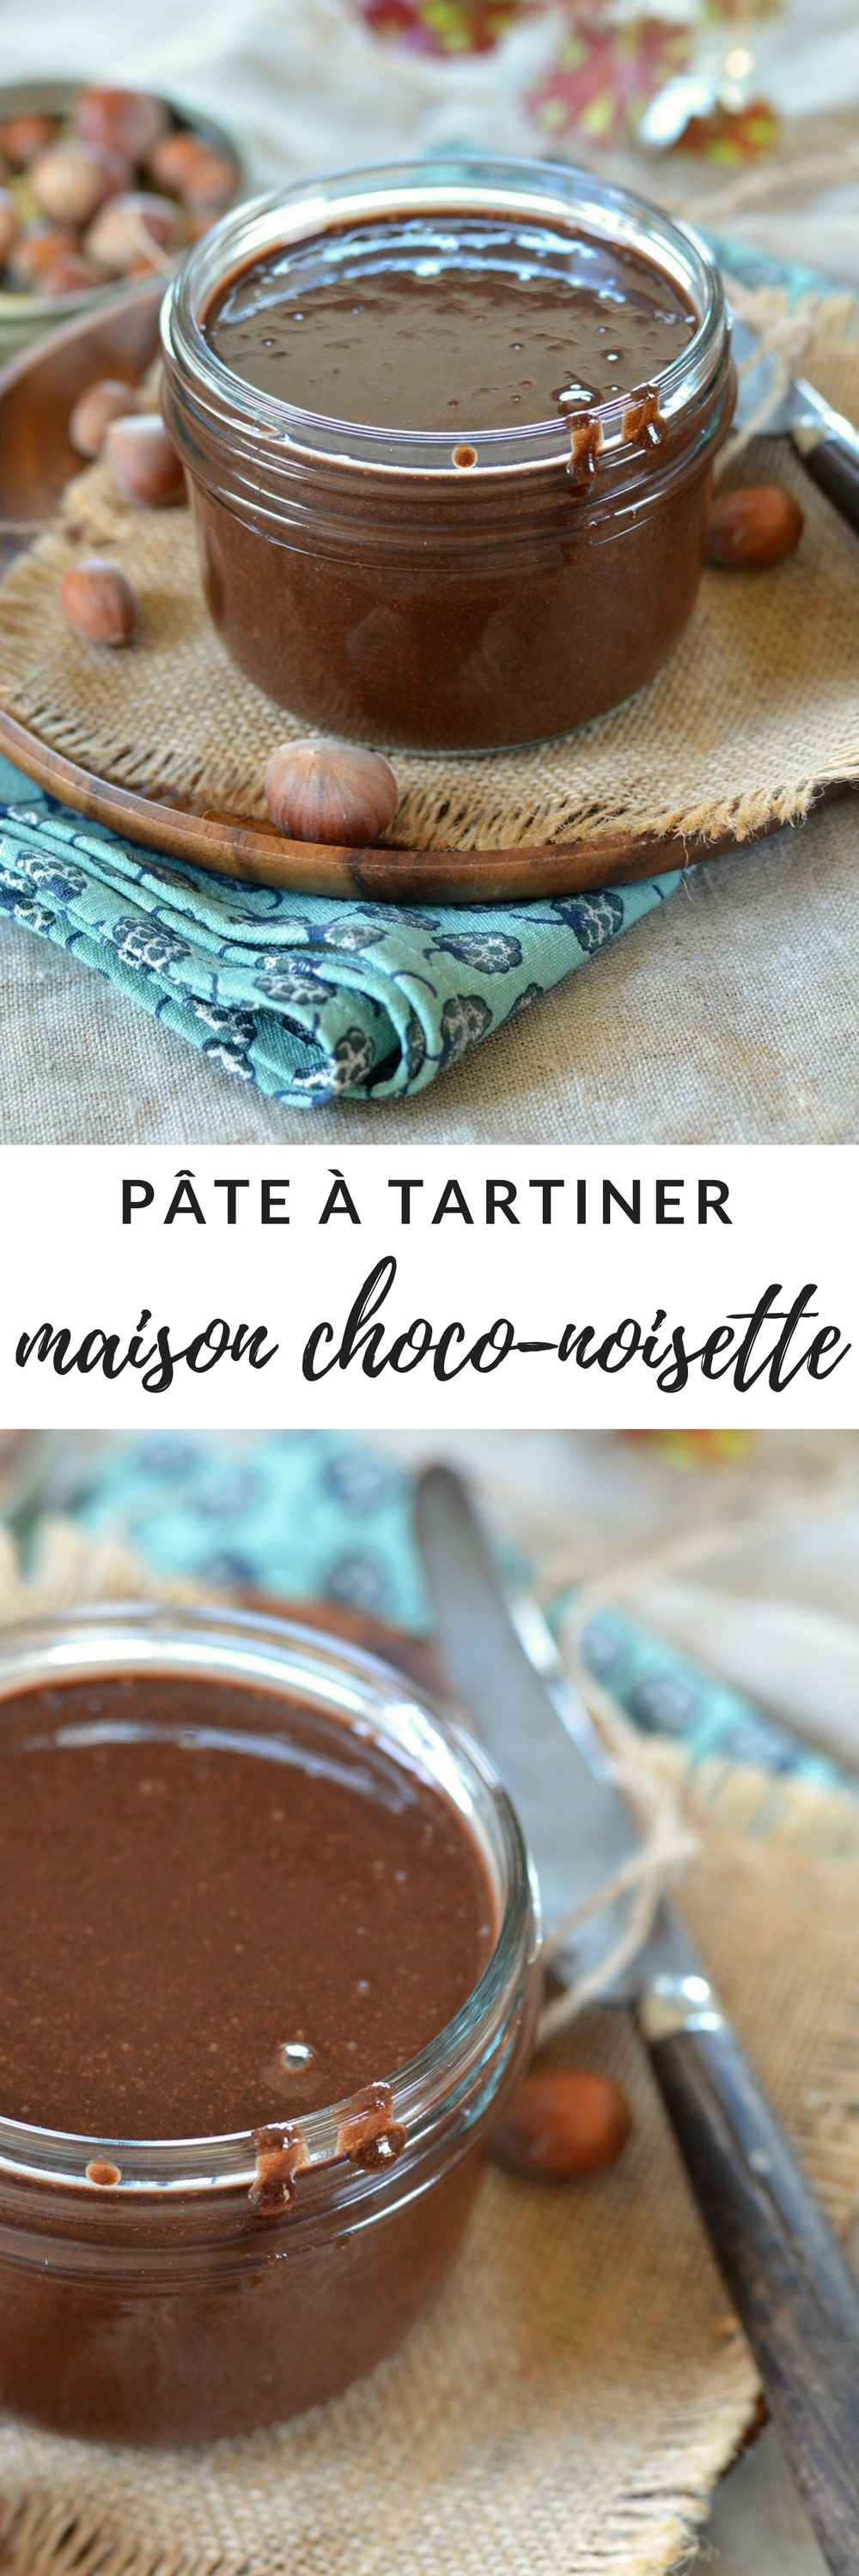 pate a tartiner maiso choco noisette